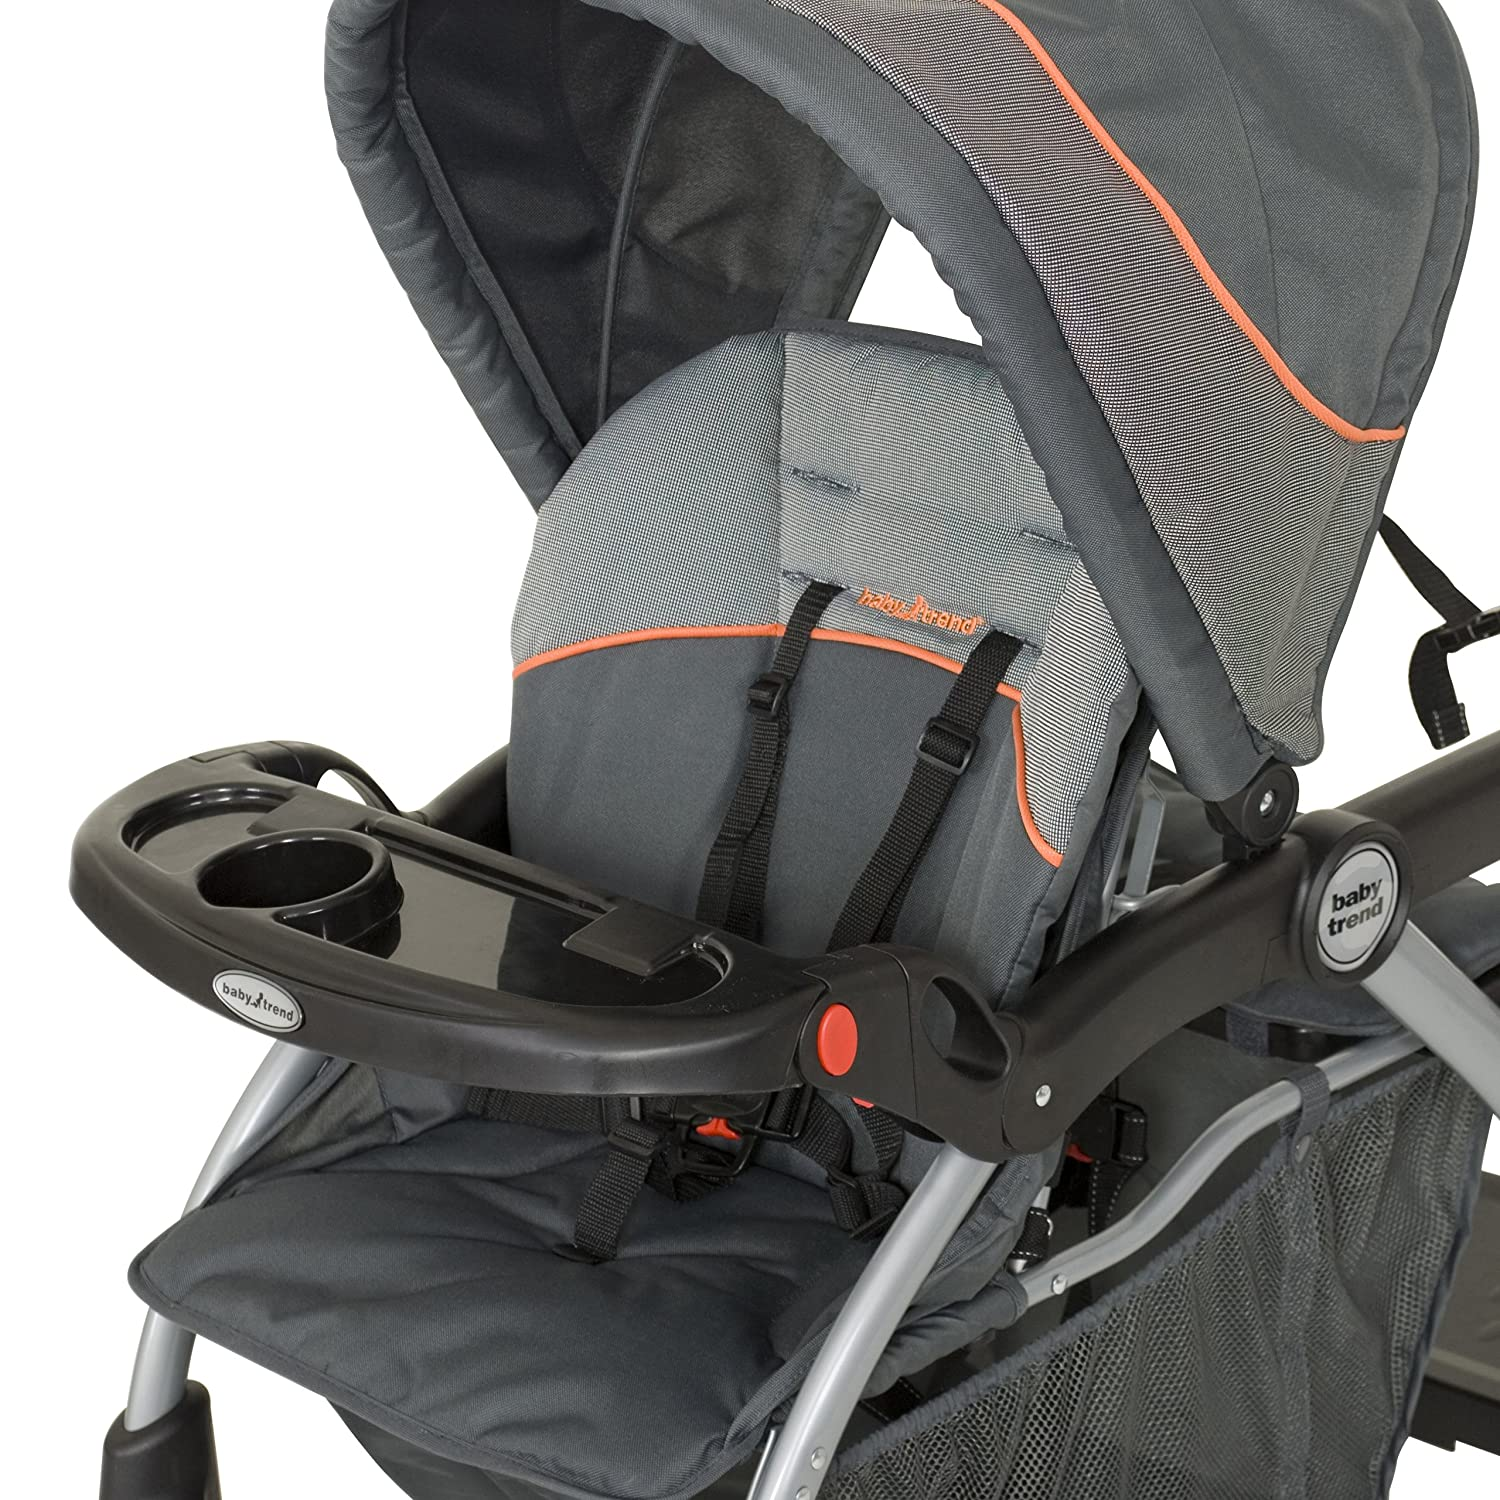 Amazon Baby Trend Sit N Stand DX Stroller Vanguard Baby Trend Double Stroller Baby